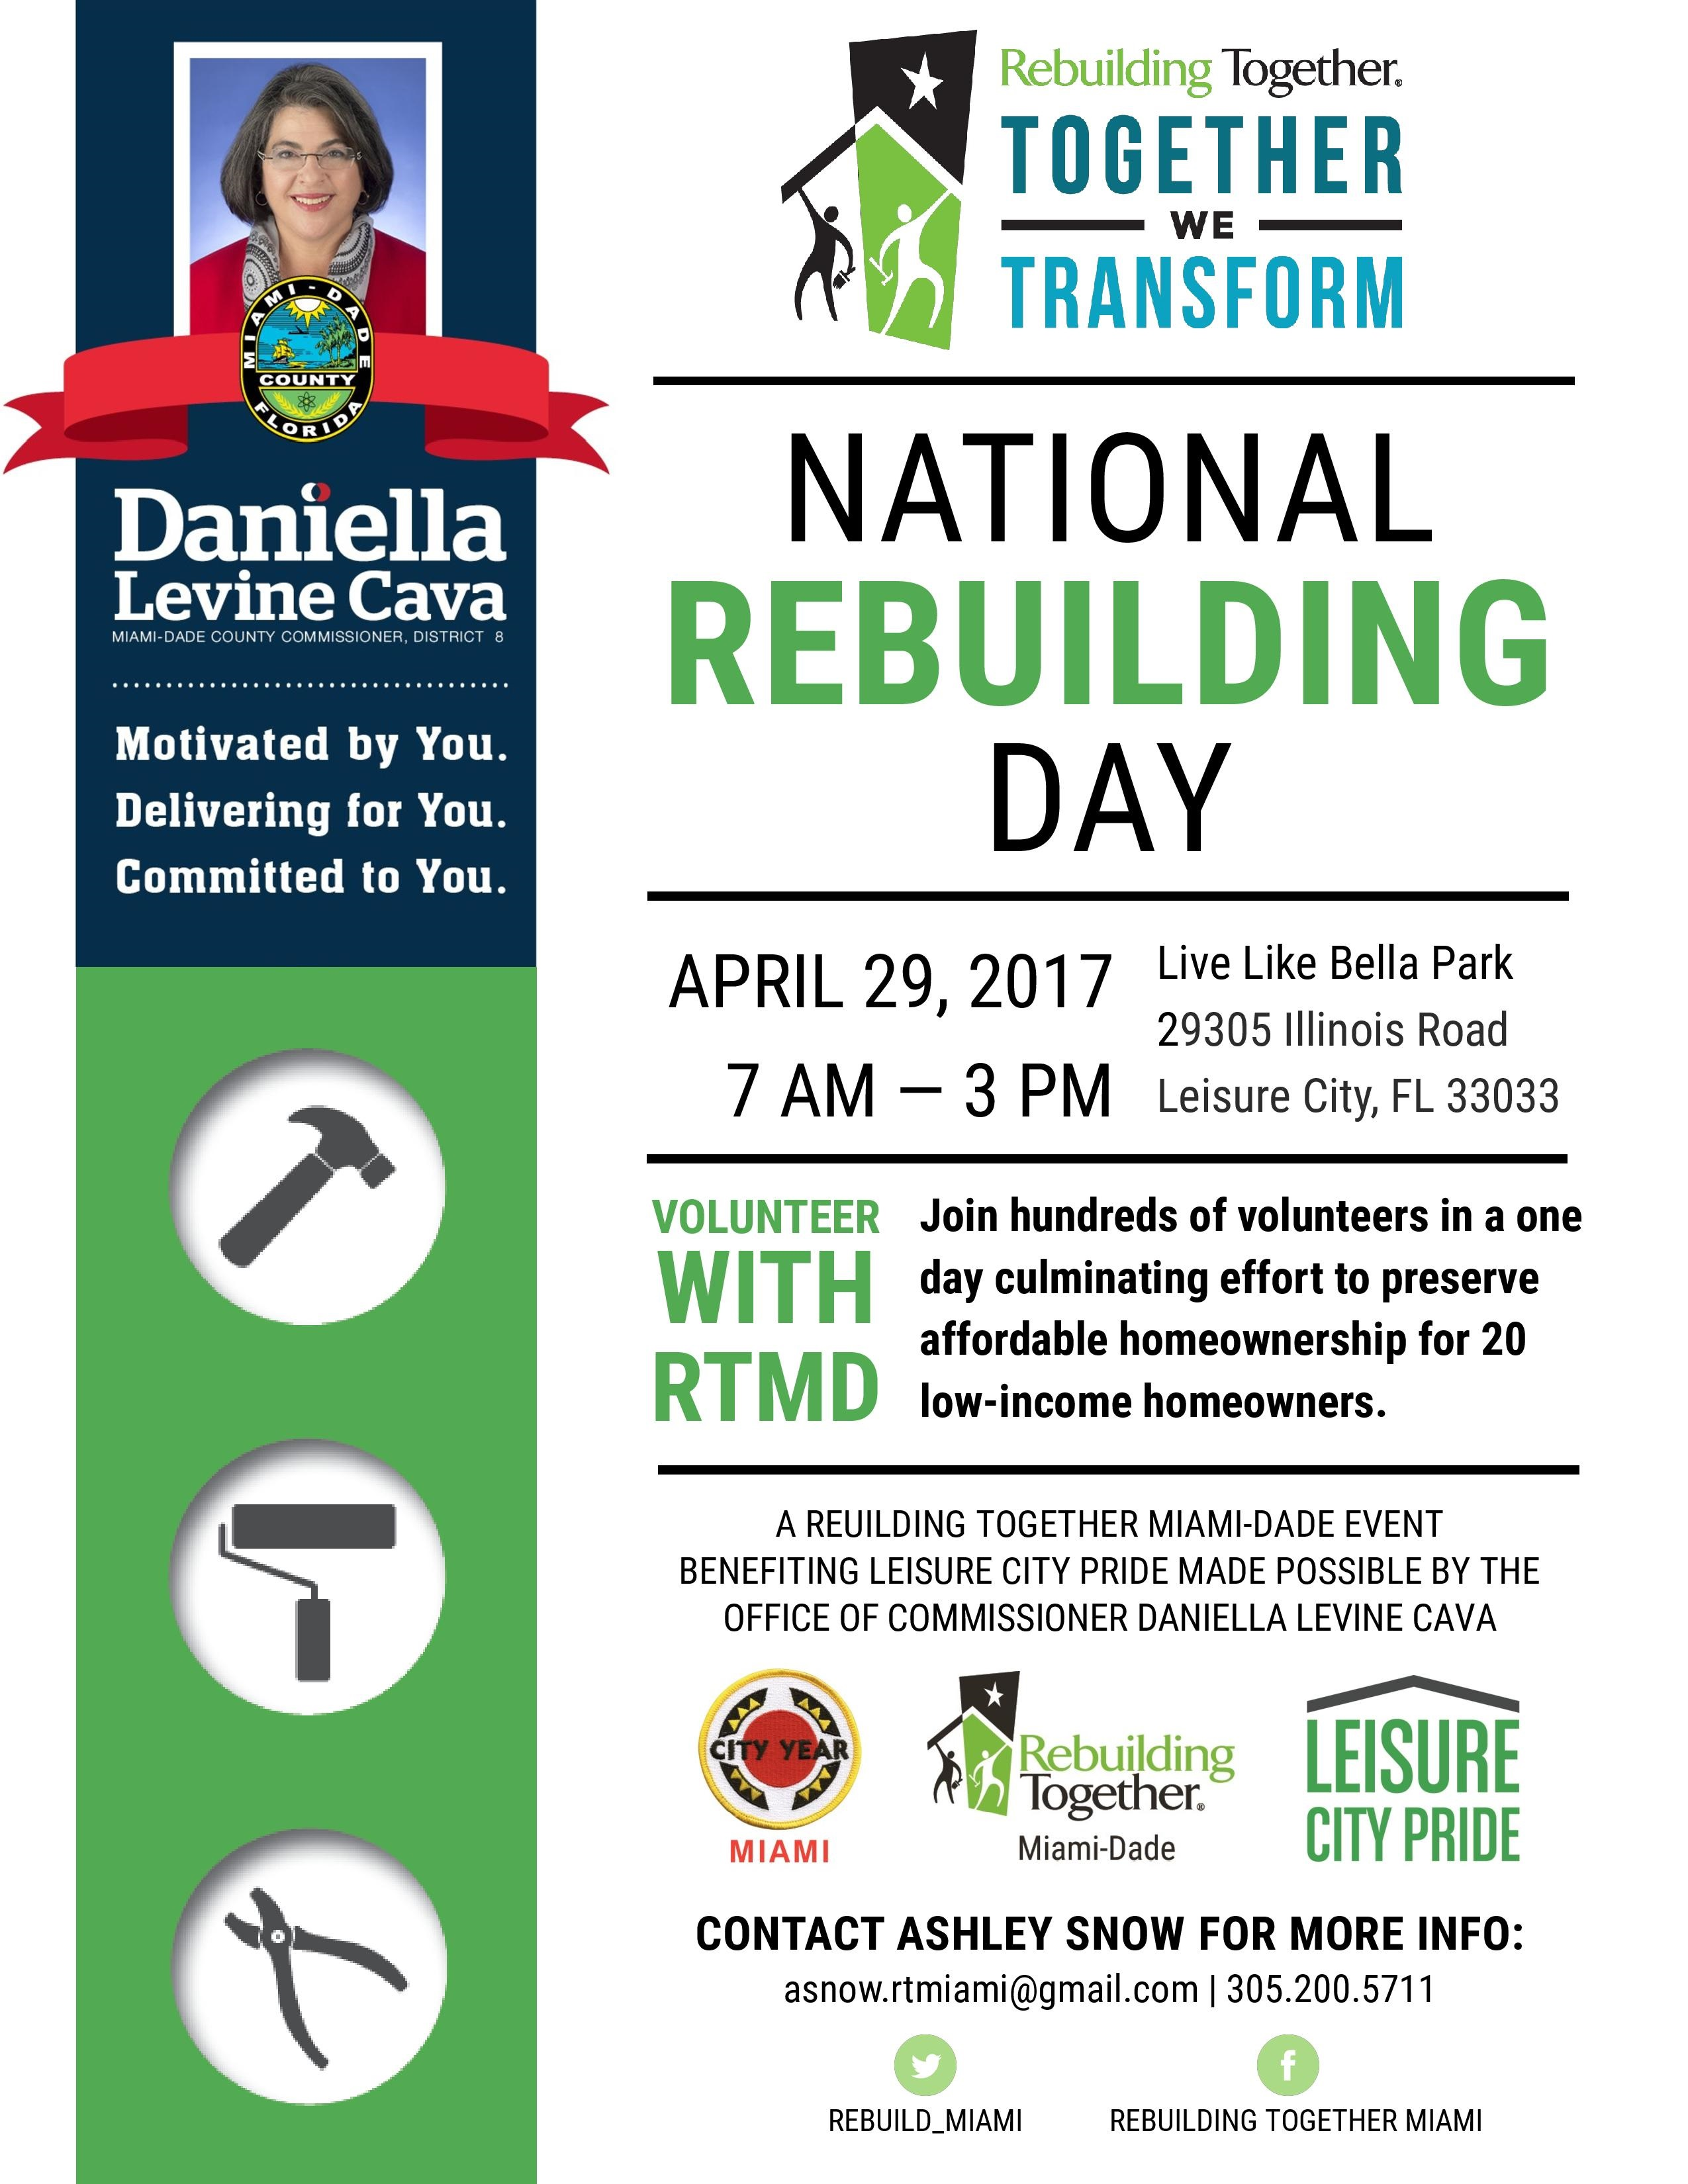 National Rebuilding Day poster